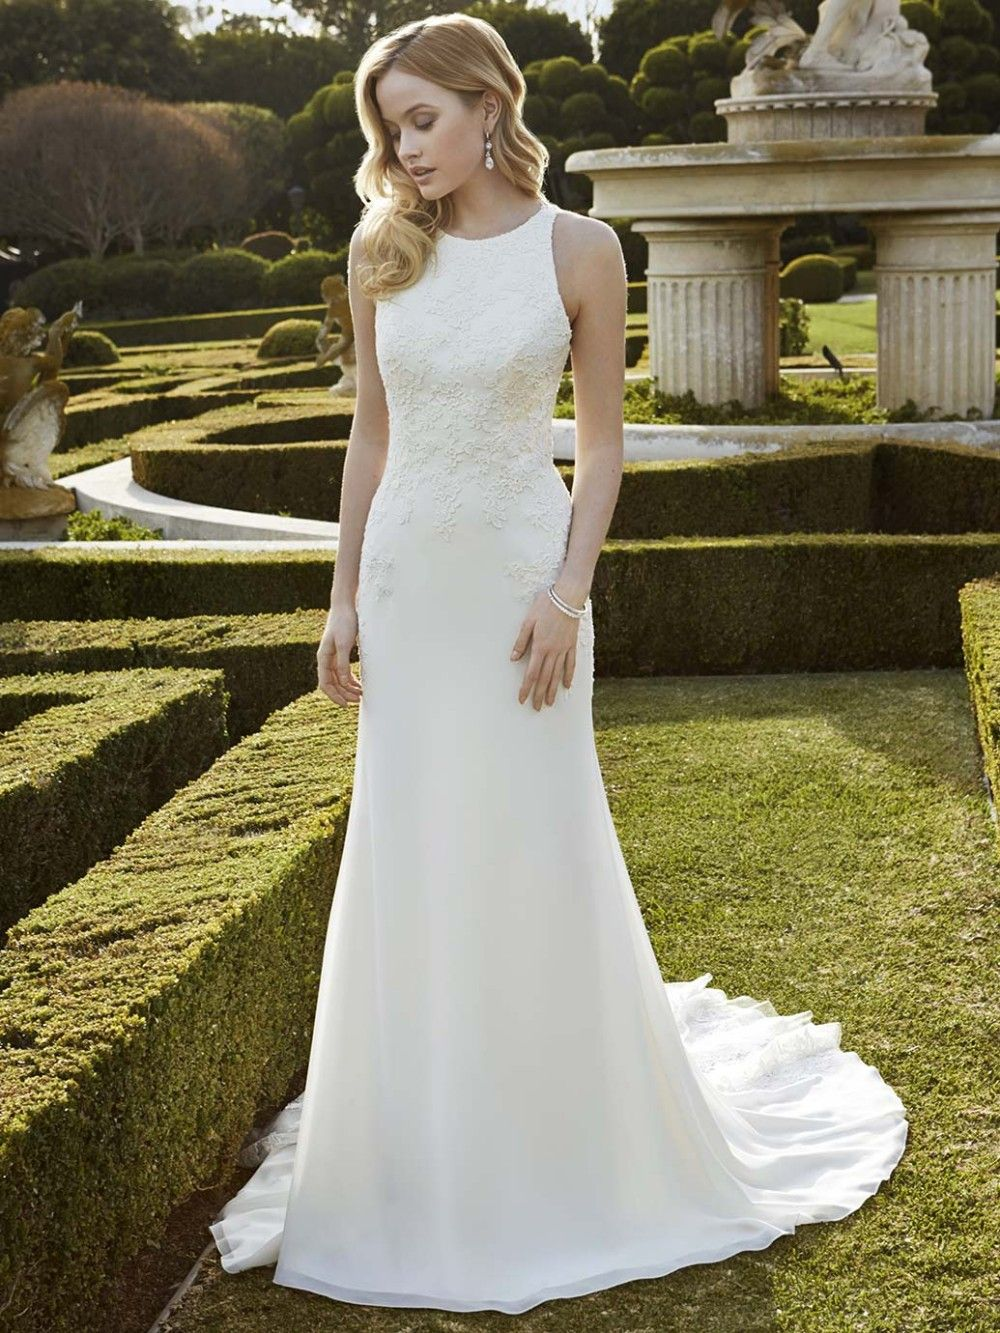 Blue by enzoani the harrogate wedding lounge all about 2016 blue by enzoani ingwiller front view i love this dress it is just so simple and beautiful ombrellifo Choice Image